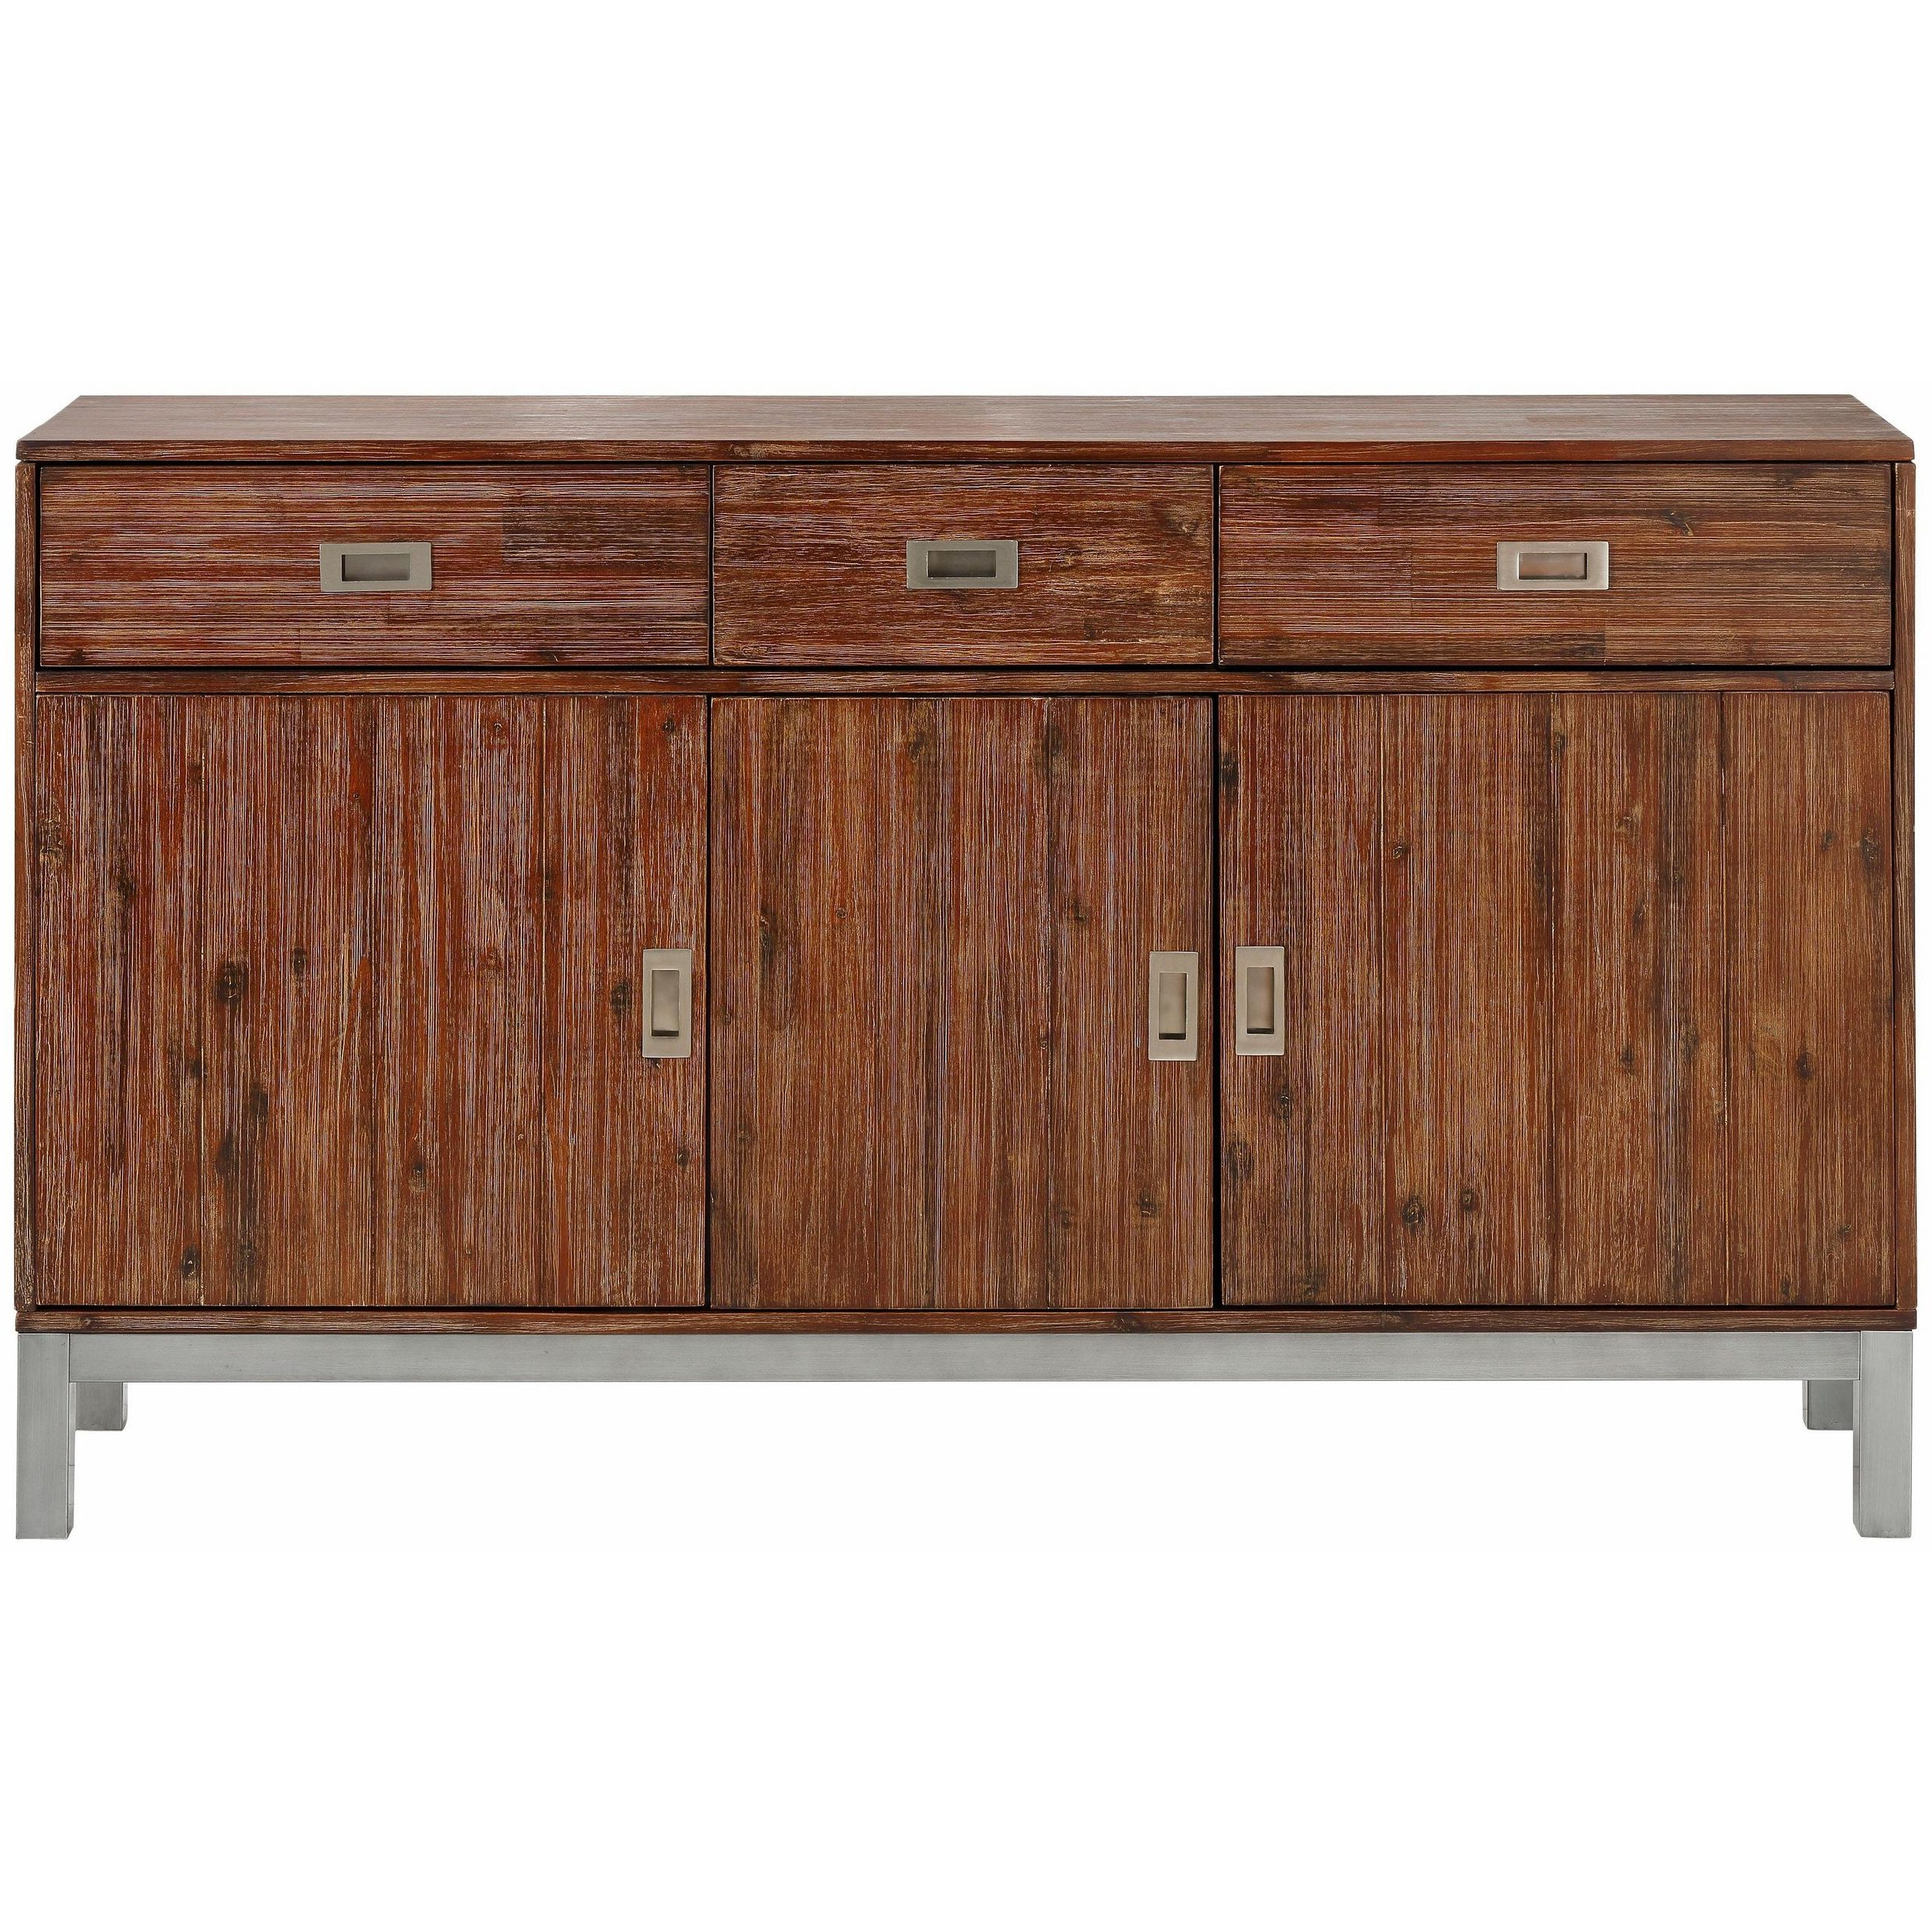 Shop Congo Acacia Wood And Metal Sideboard With 3 Doors And 3 With Current Acacia Wood 4 Door Sideboards (View 2 of 20)